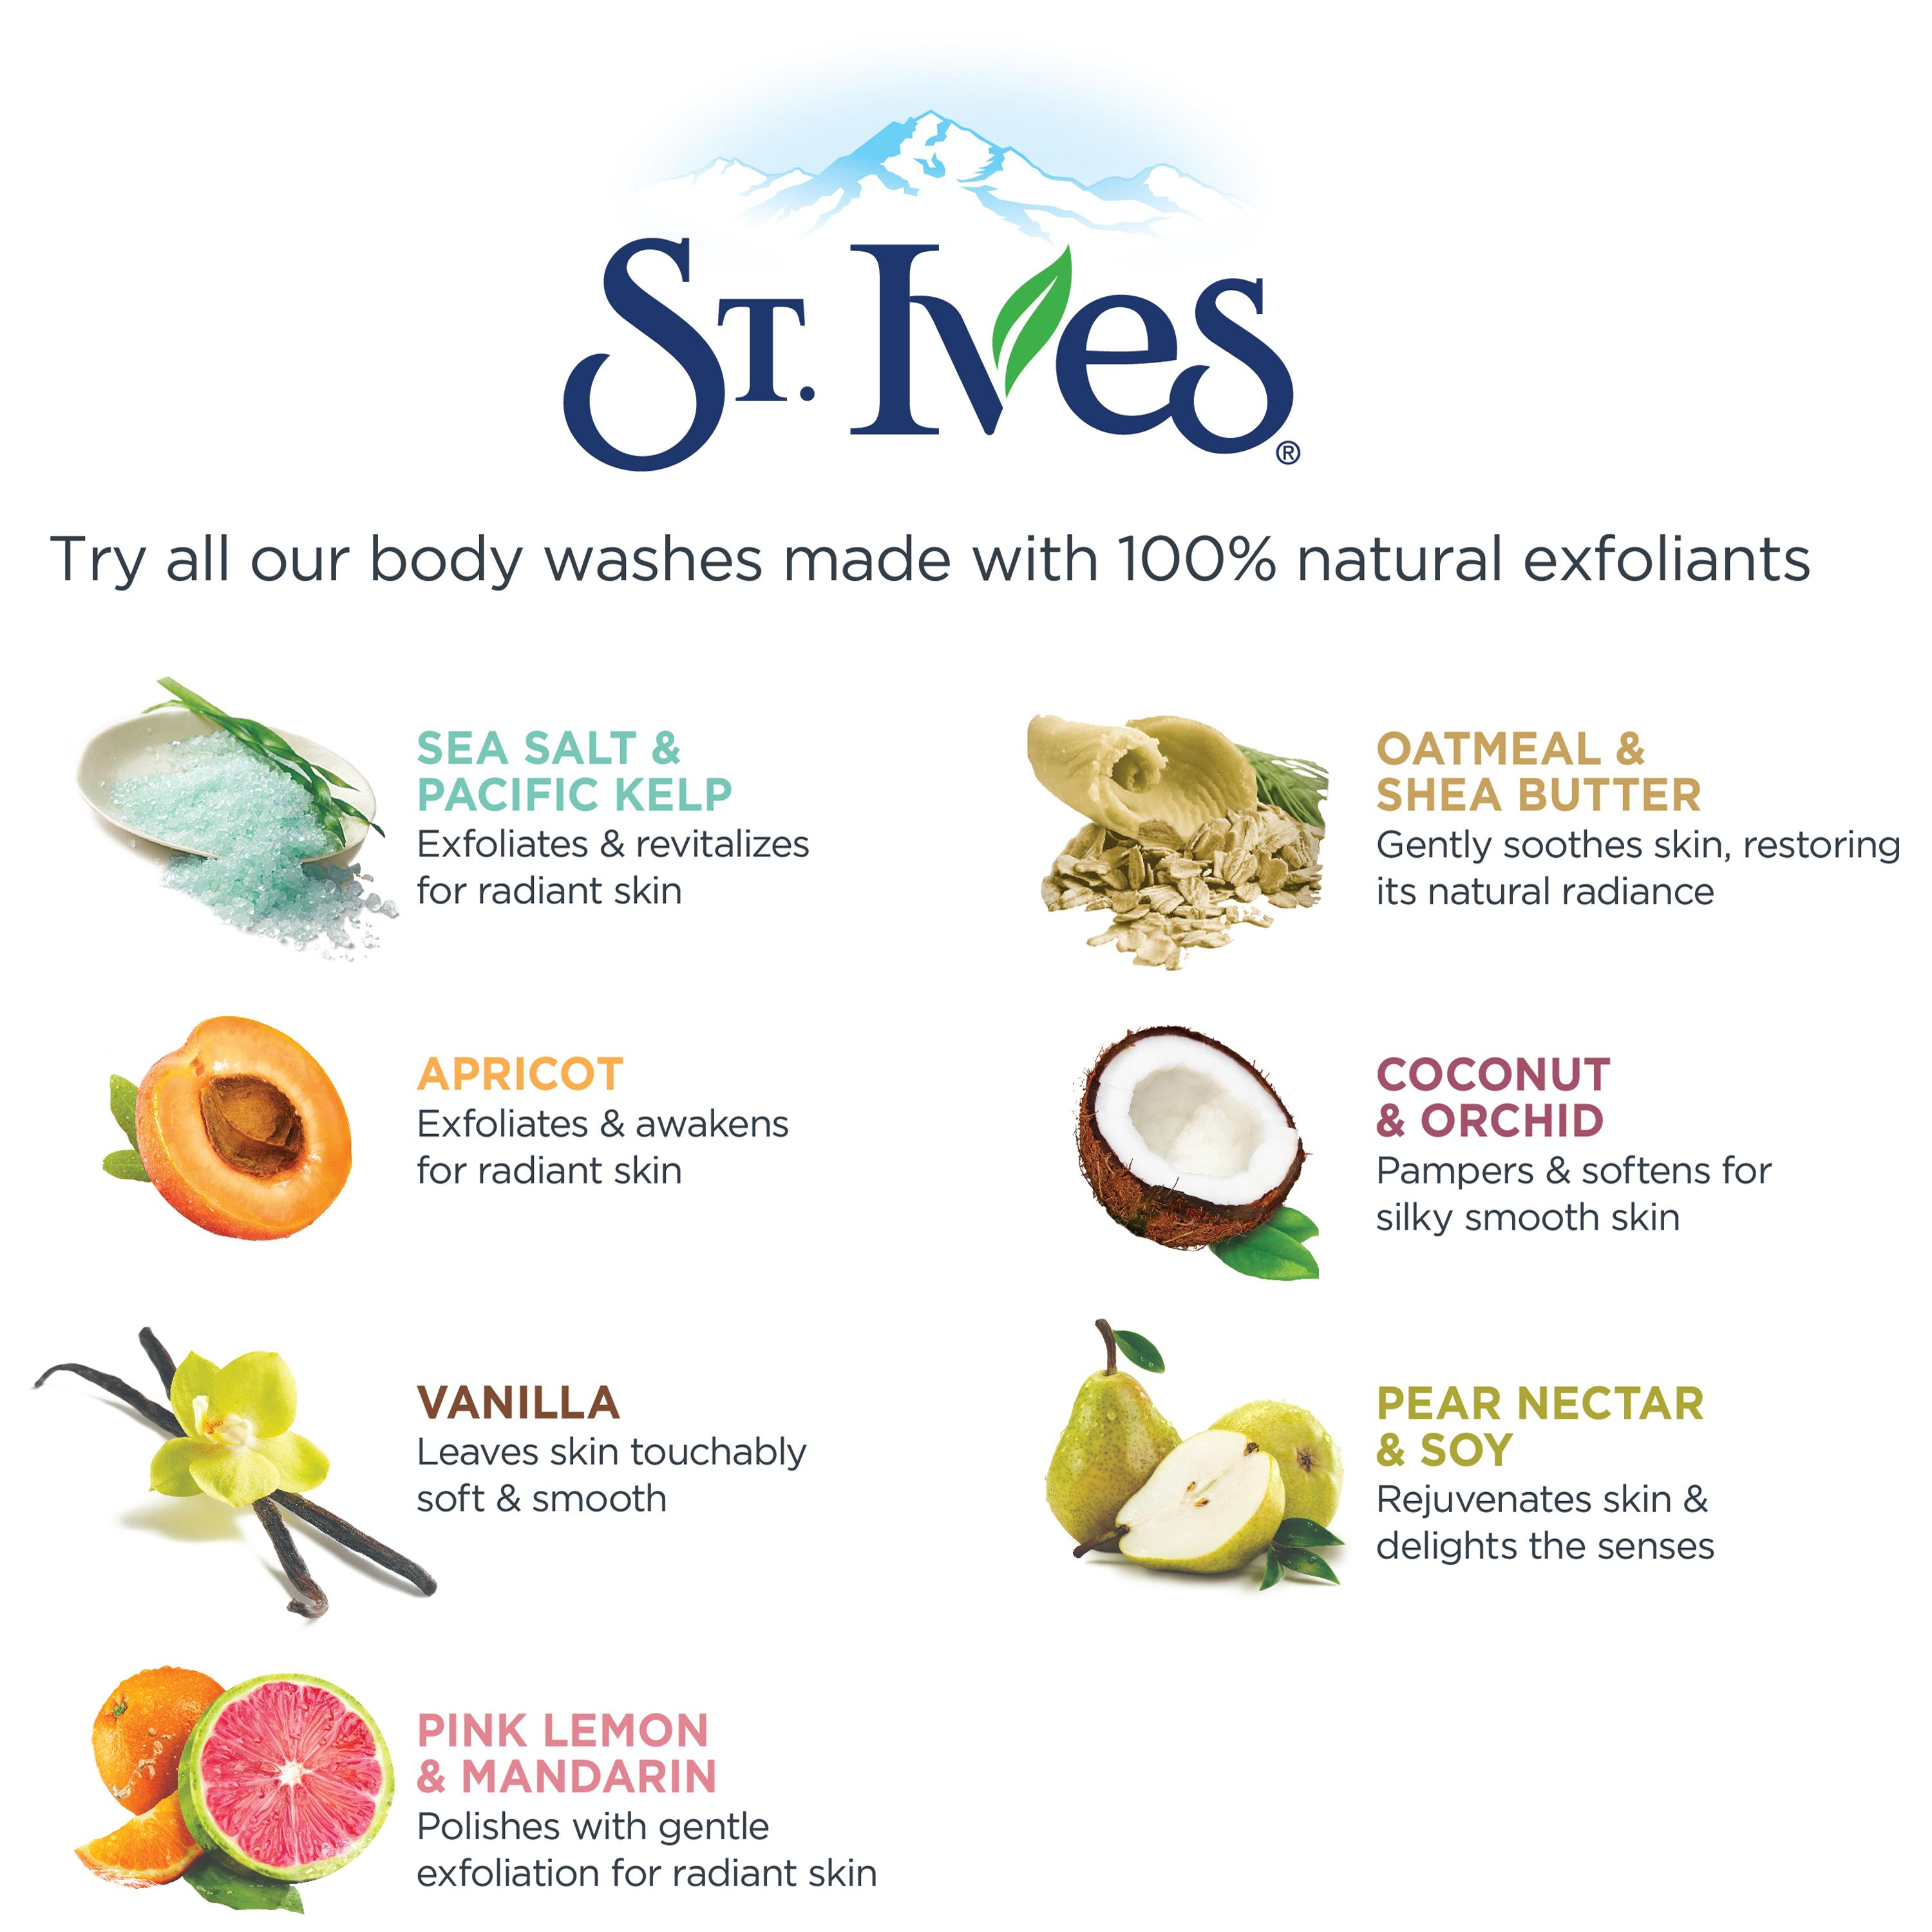 St. Ives: Dedicated to Natural Ingredients